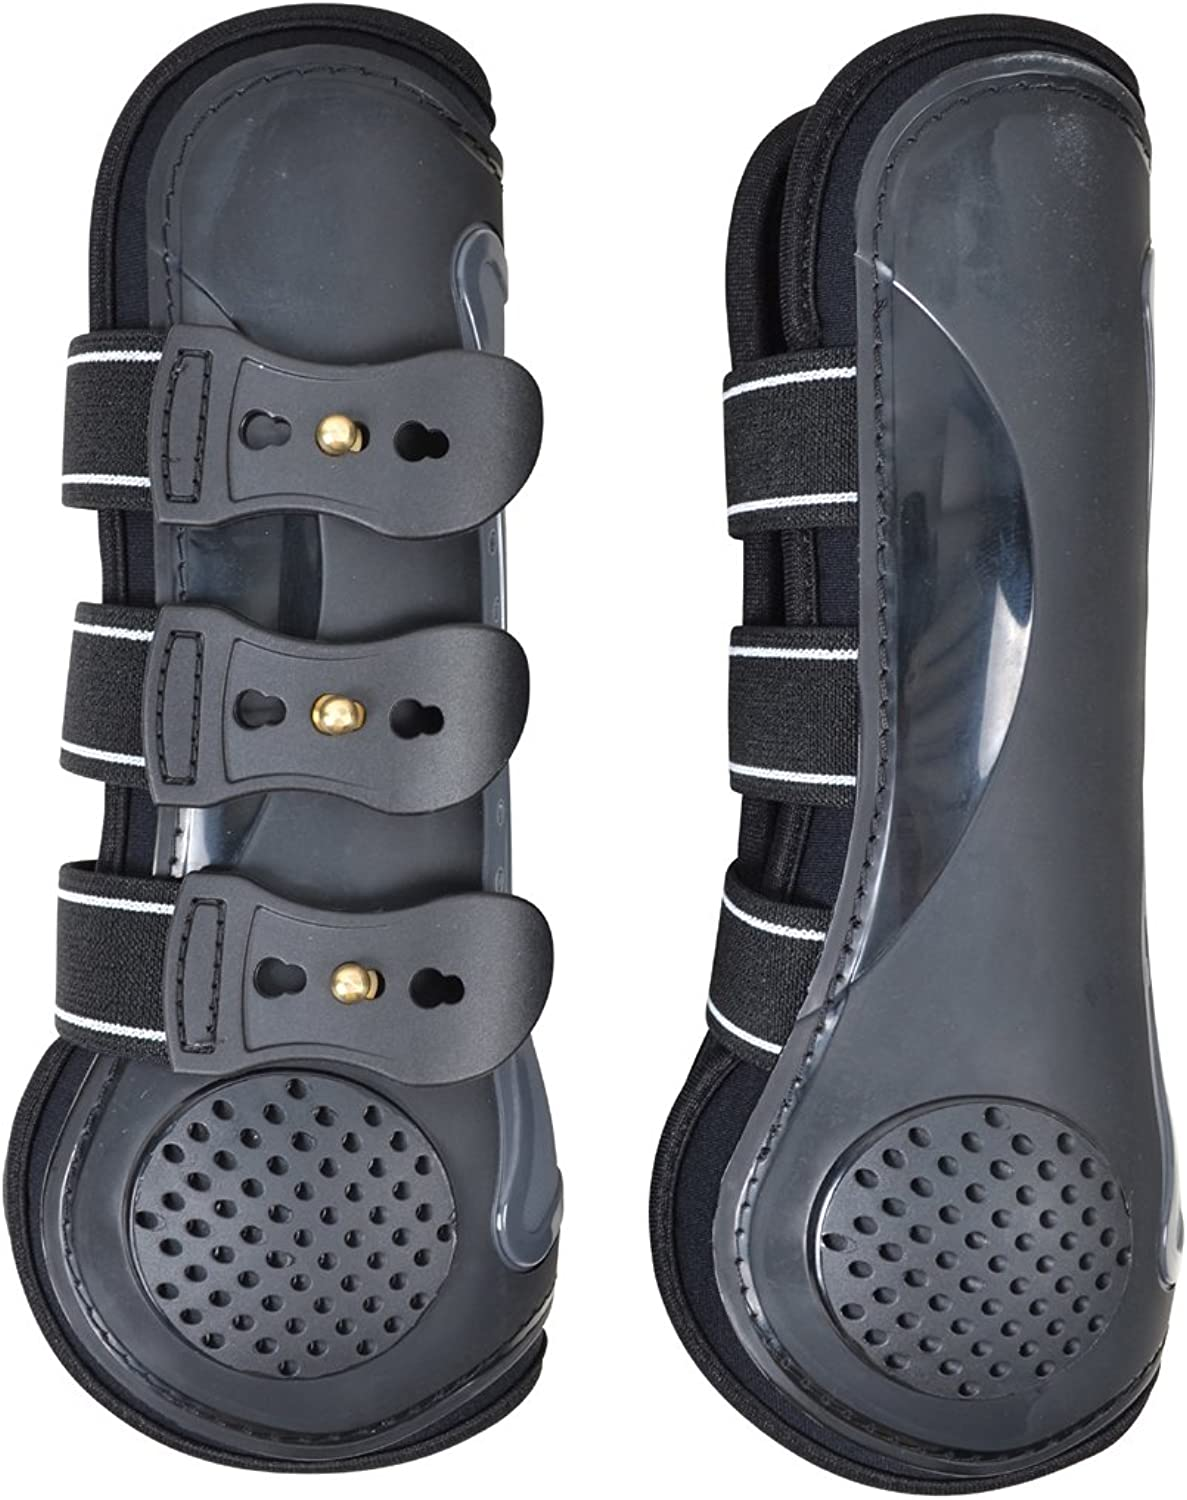 Hansbo Sport Infused Ceramic Tendon Boots (2 Pack)